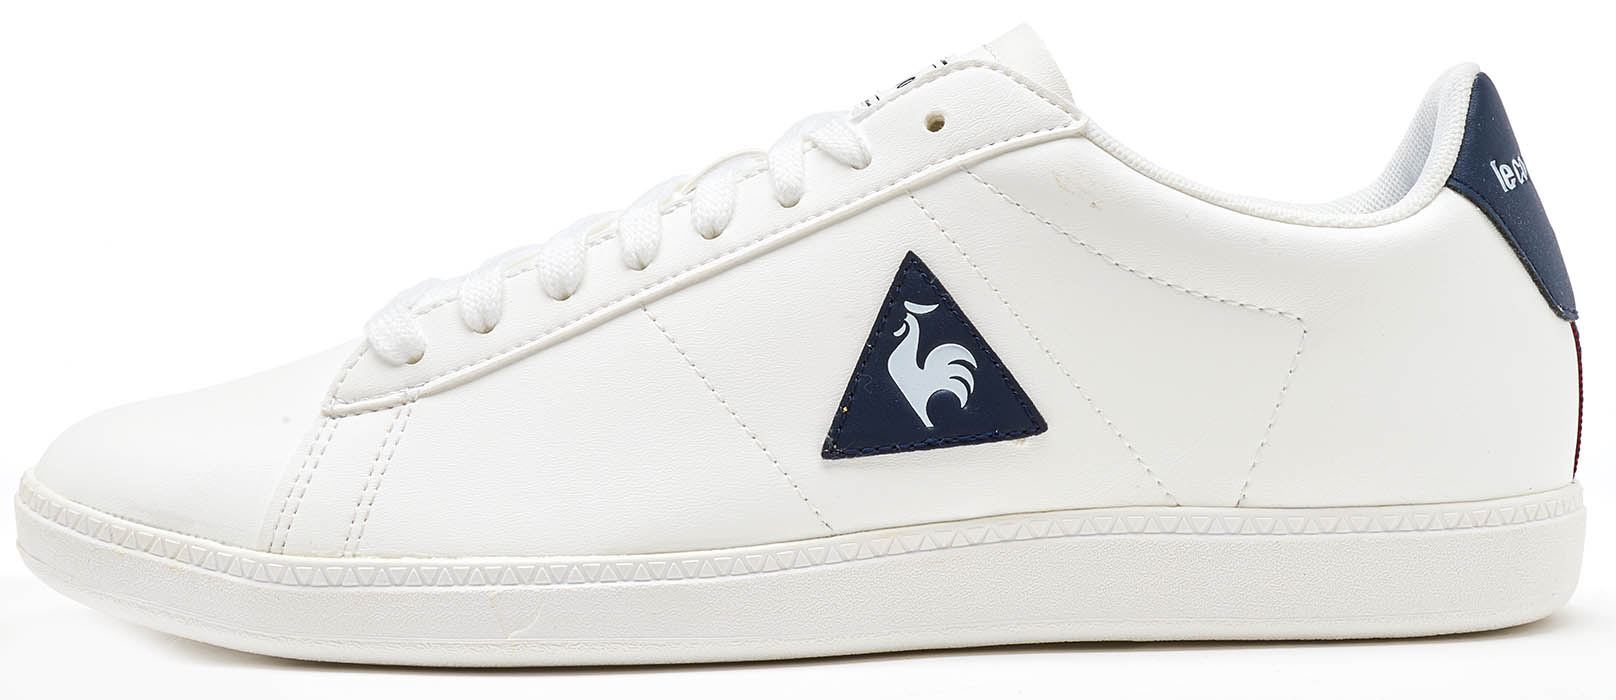 f10194393071 Le Coq Sportif Courtset S Lea Trainers in White   Blue 172F138